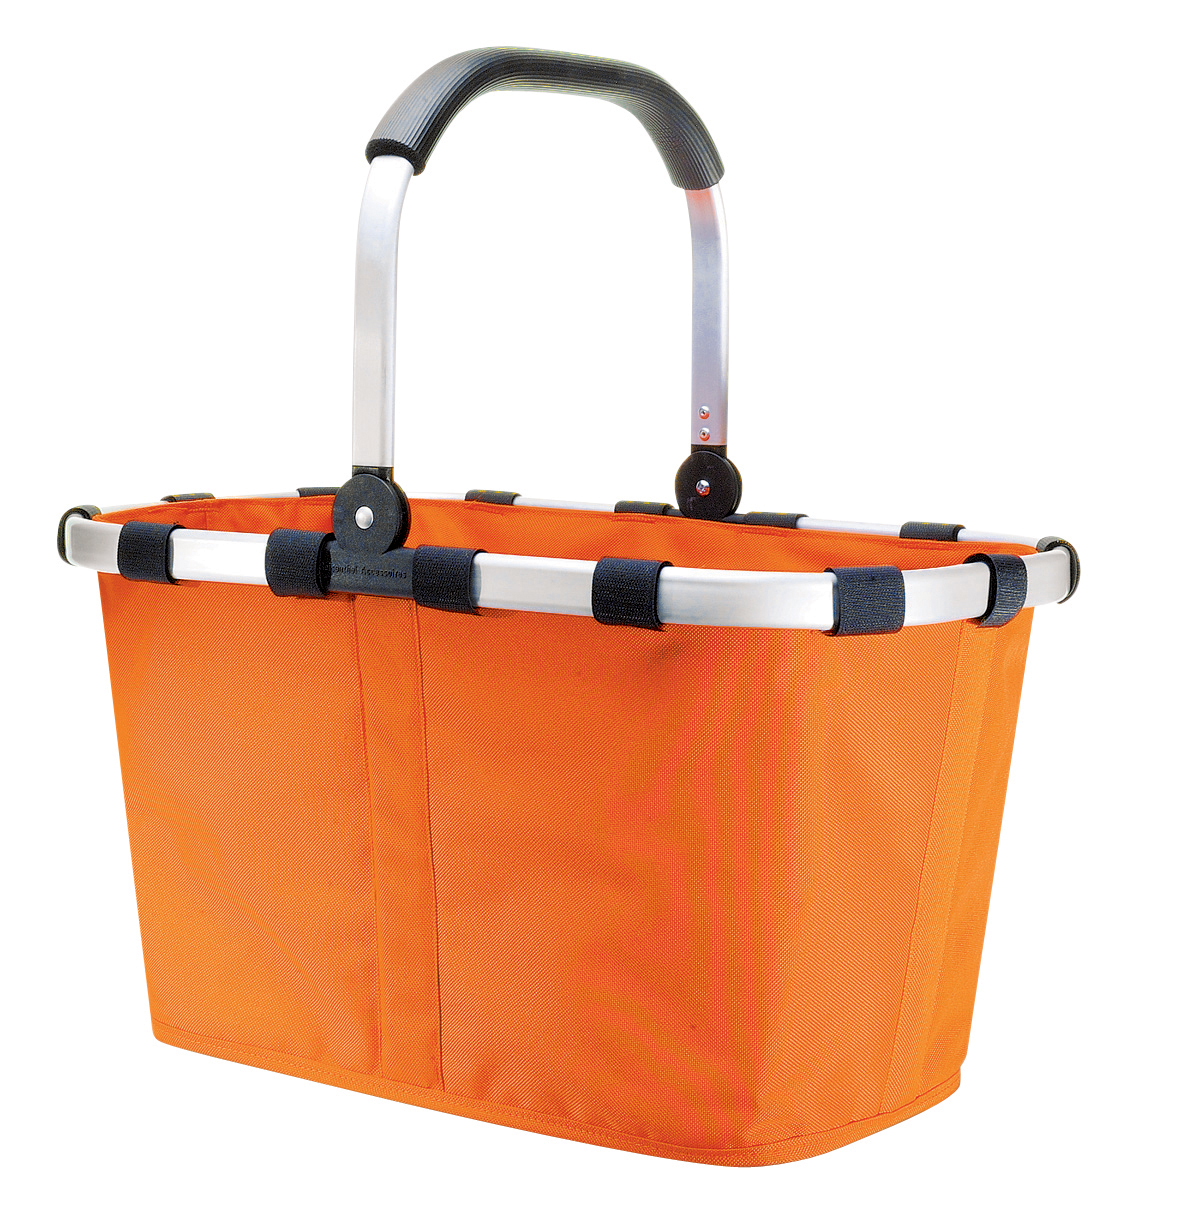 Fun Halloween Trick-or-Treat Baskets for Kids: Orange Reisenthel ...